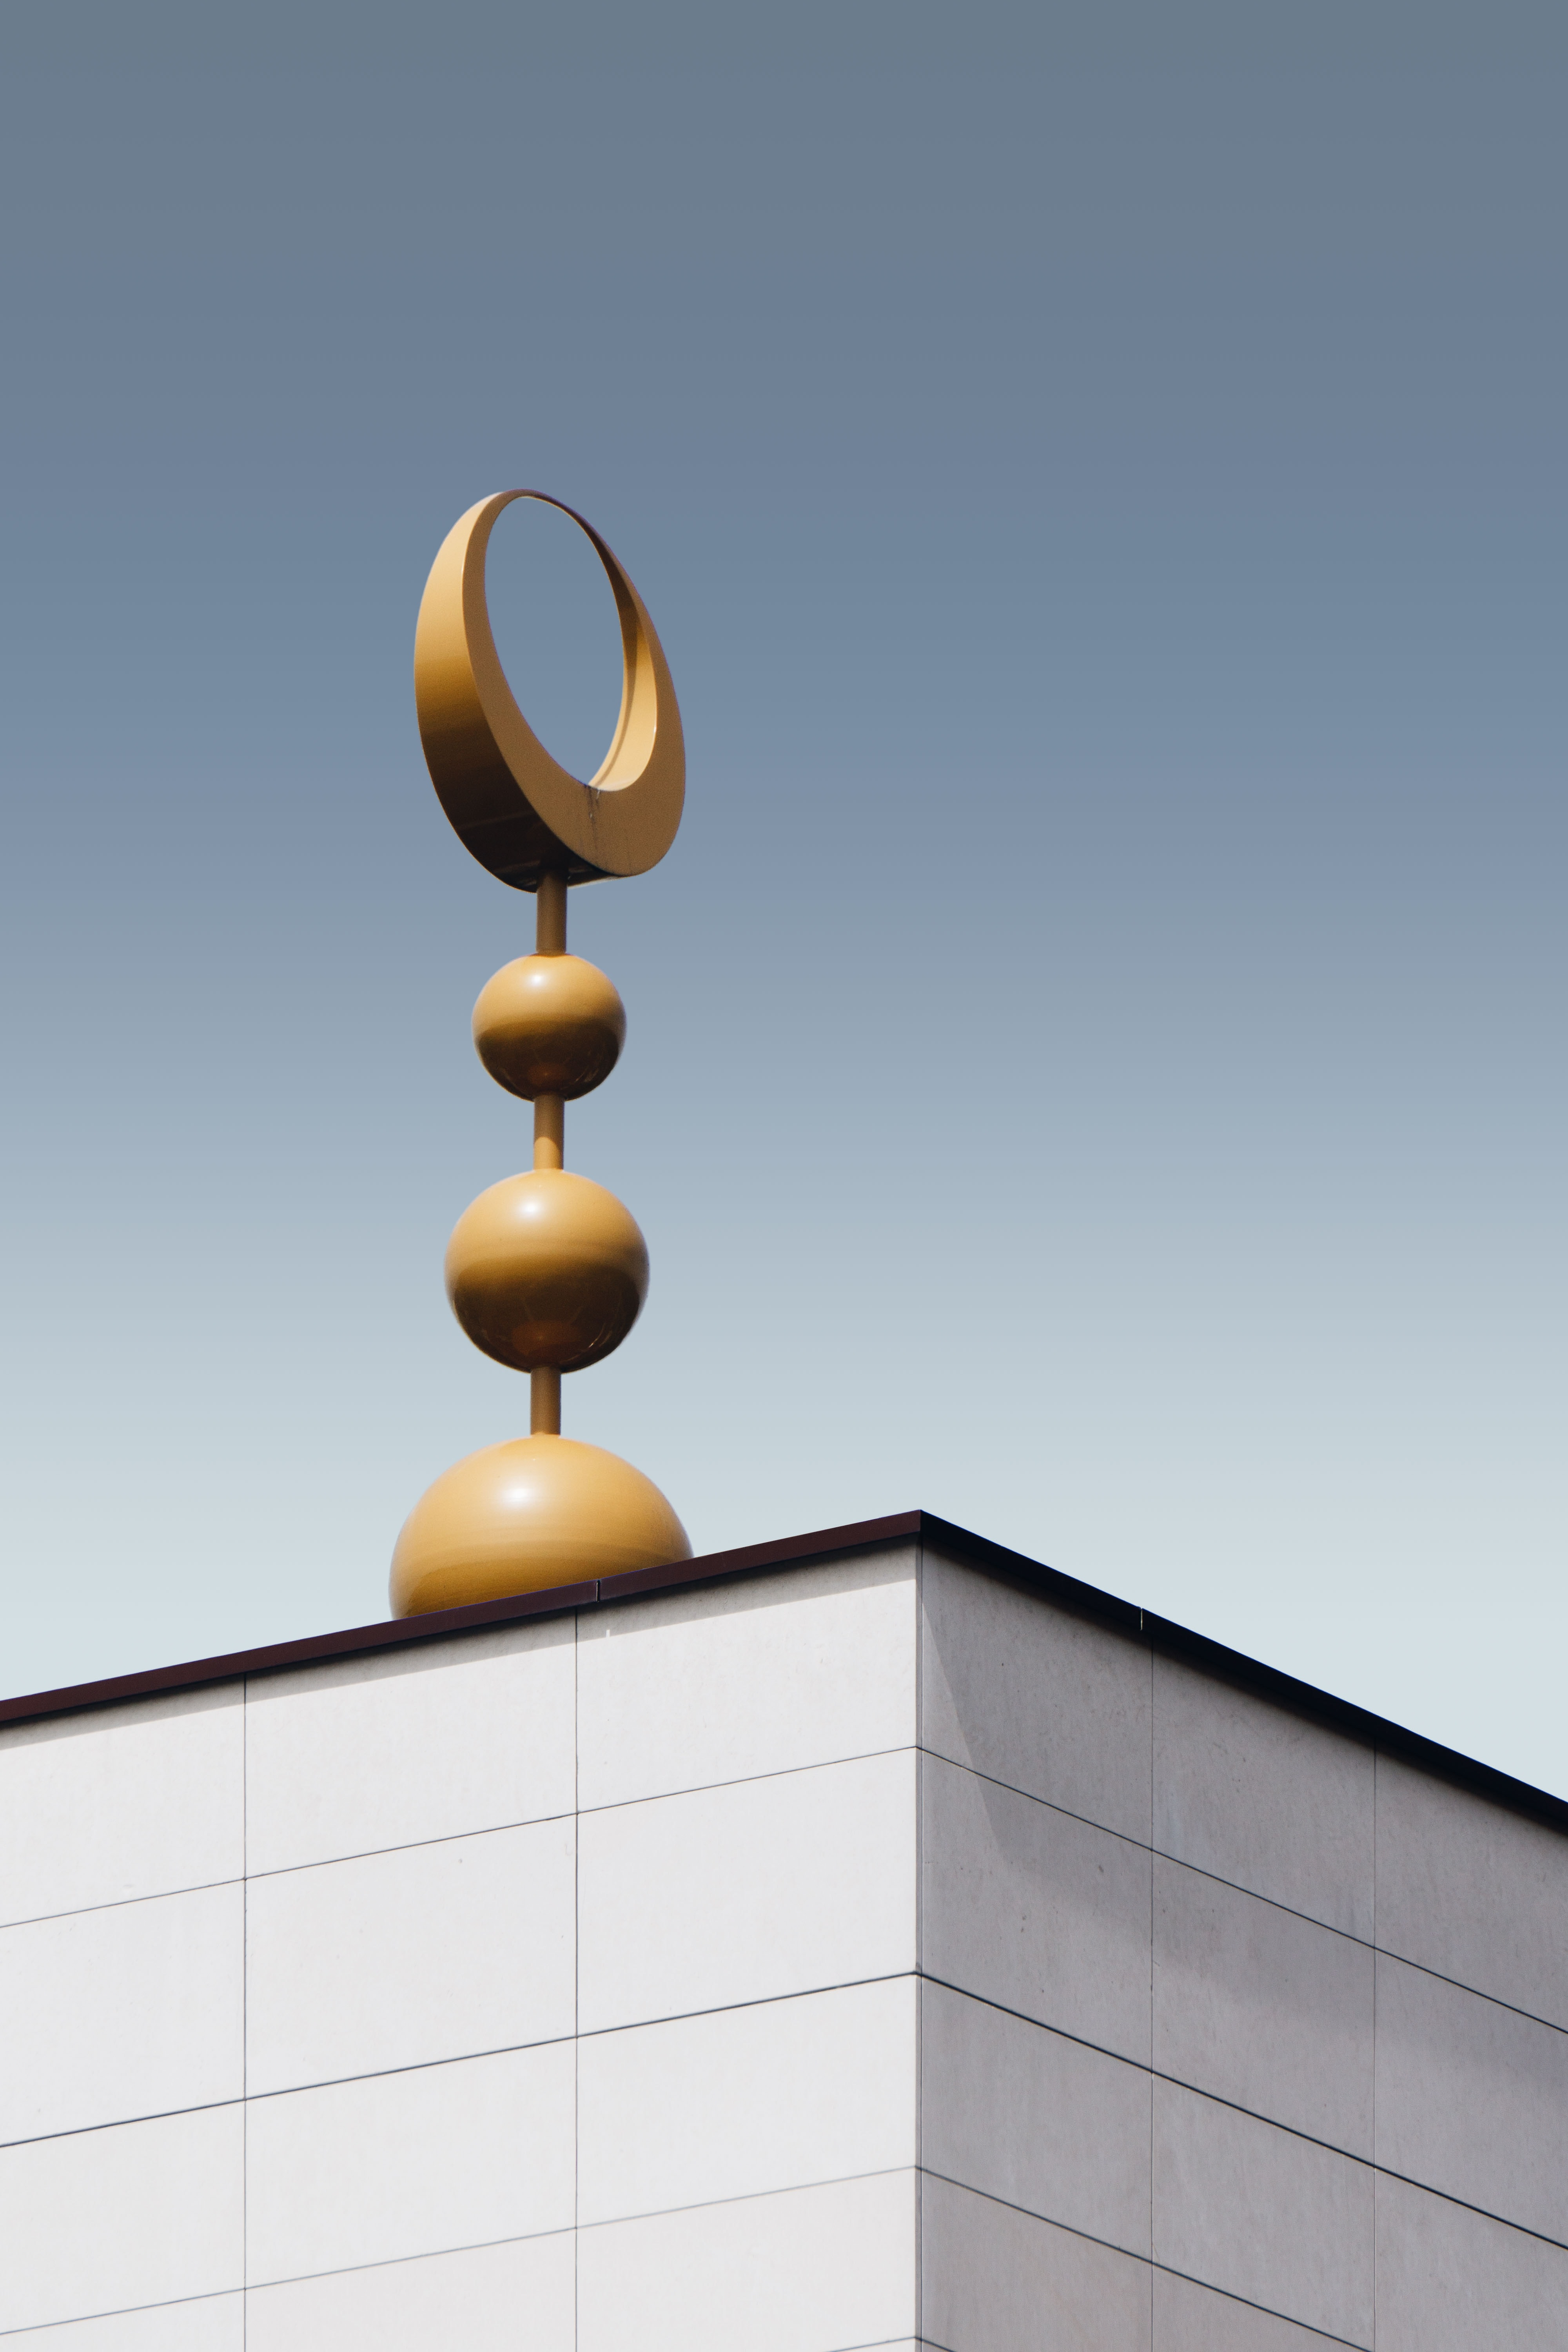 ball stack roof decor